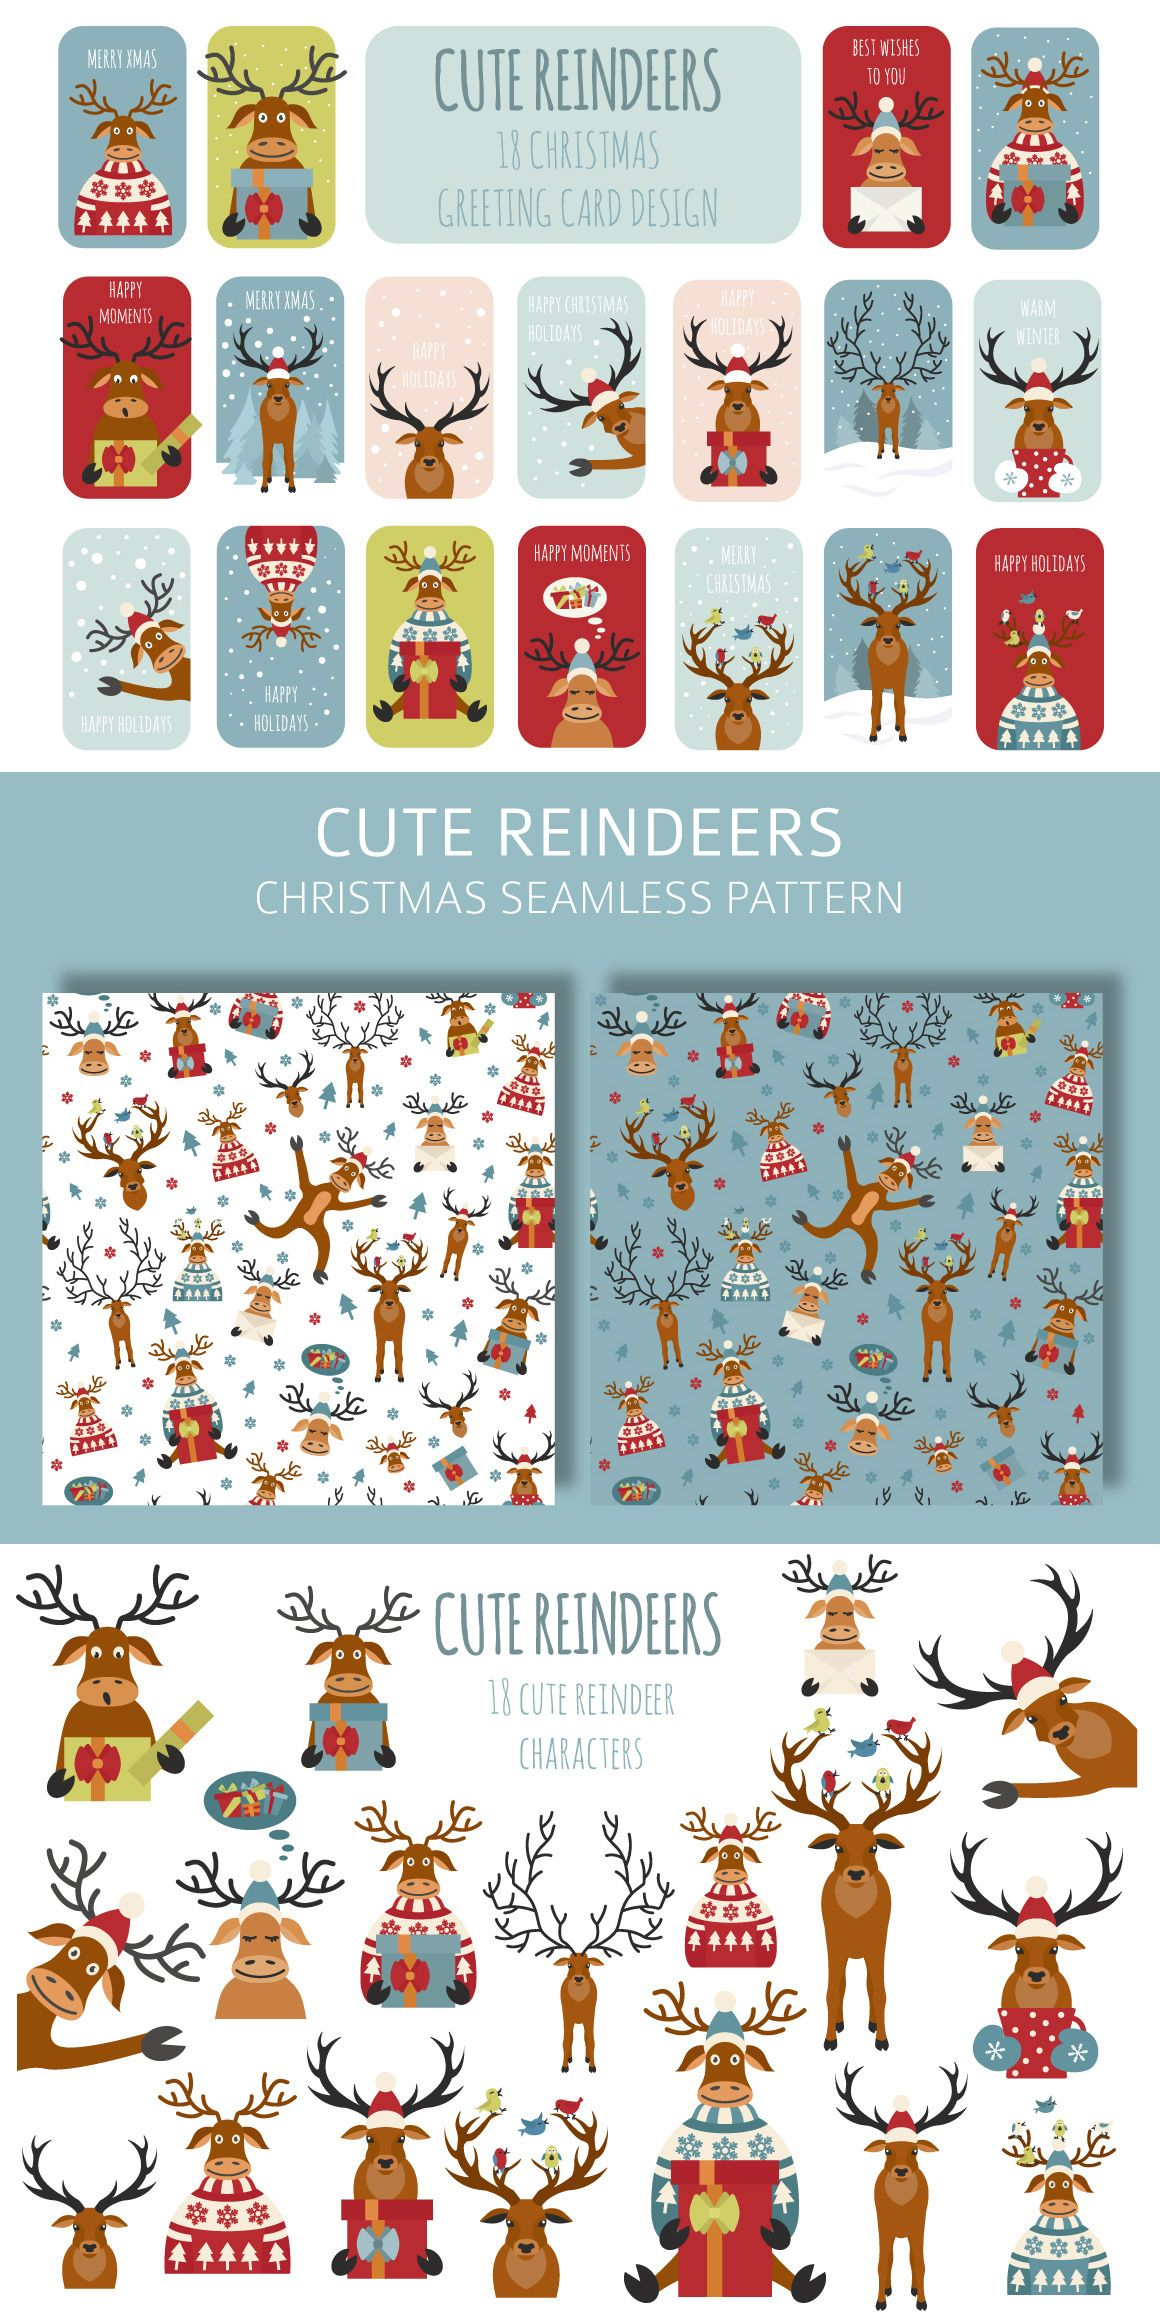 Cute reindeers Xmas collection - In the set 18 different #funny #reindeer characters and 18 ready-made #greetingcard #designs, #holidayposter. Also in the Cute reindeers #Xmas collection are 2 samples of seamless #pattern. #animal #bird #cartoon #christmastree #cute #deer #design #gift #icon #illustration #merrychristmas #newyear #pattern #poster #SANTACLAUS #snow #sticker #sweater #vectorxmas #christmasdeals #christmasdesign #christmasinvitation #christmasflyers #christmasparty #printables